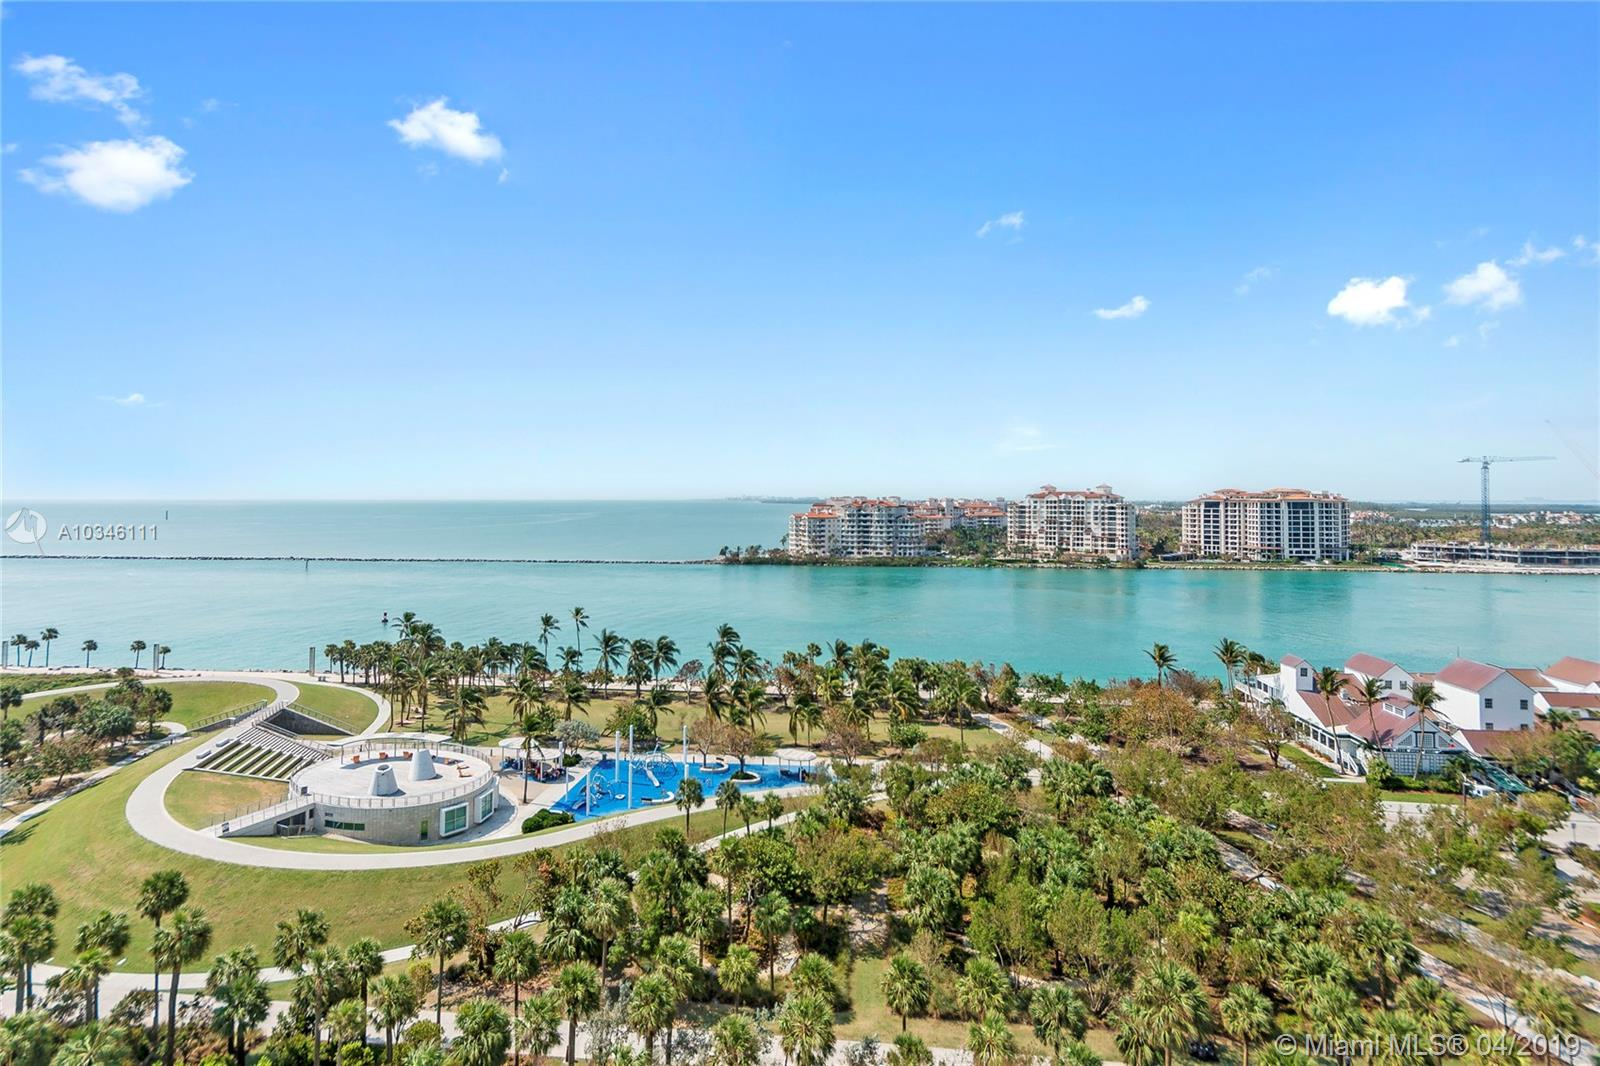 100 S Pointe Dr, Unit #1206 Luxury Real Estate